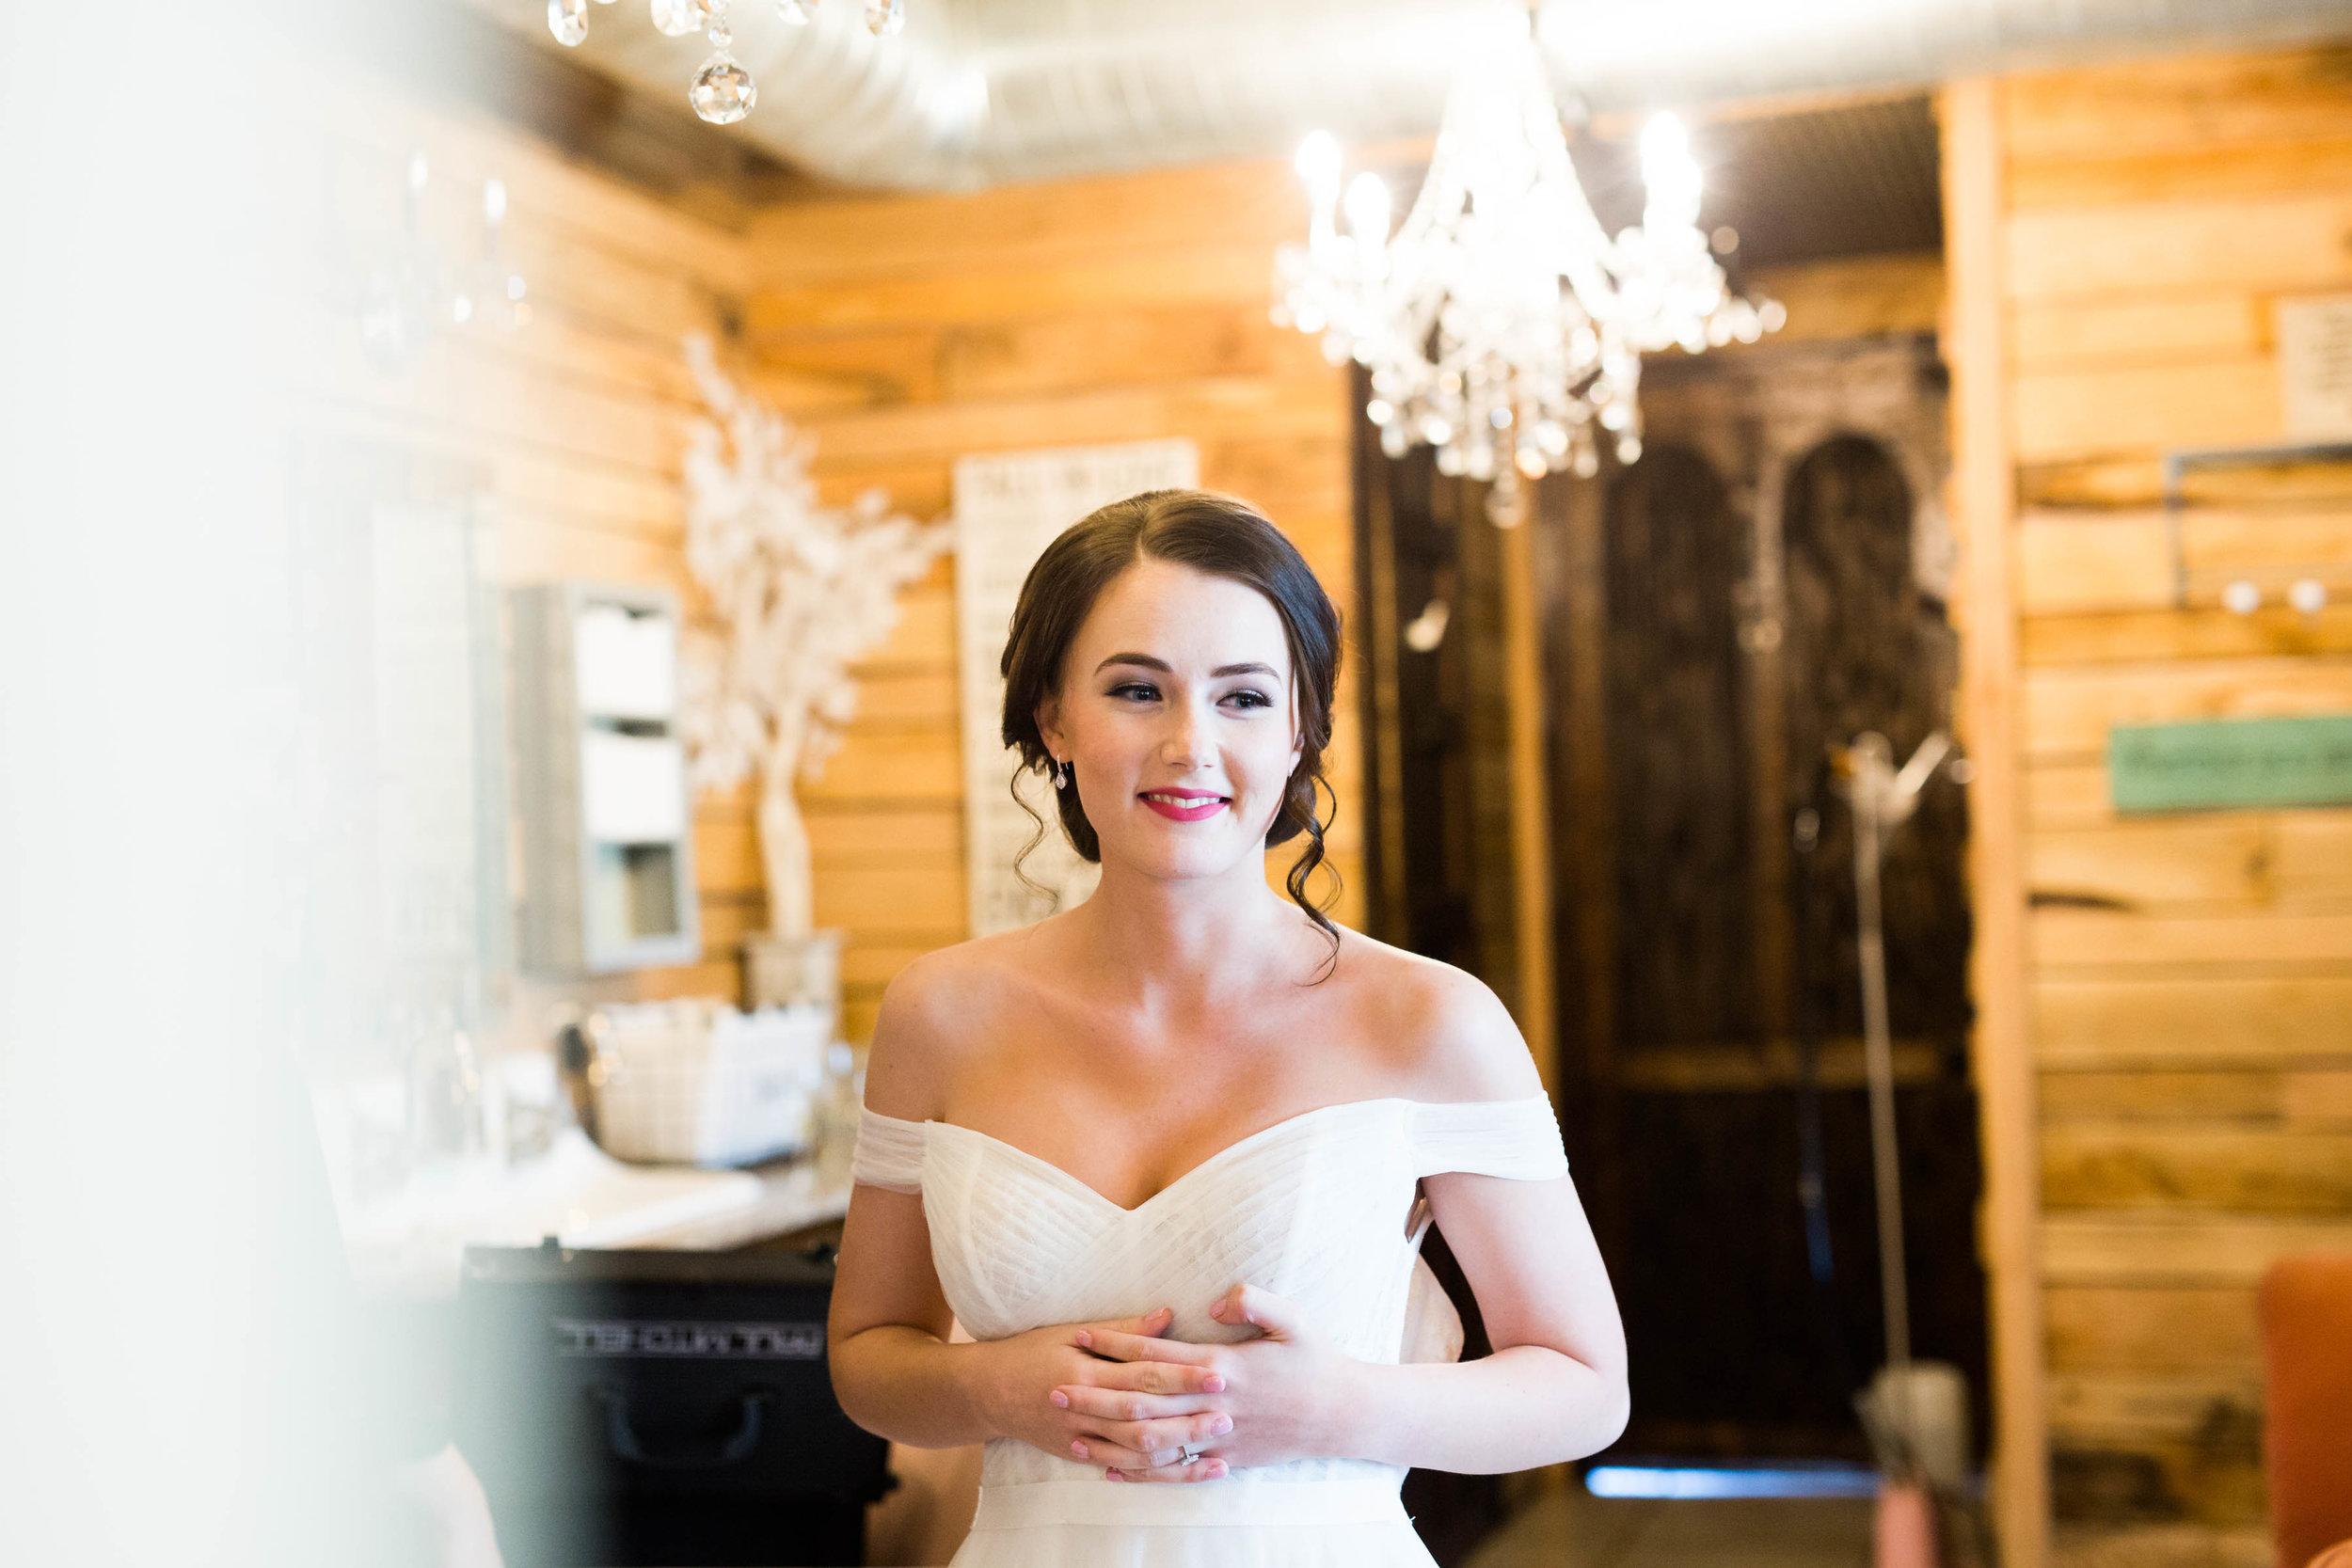 oklahoma_wedding_photographer_southwind_hills-12.jpg